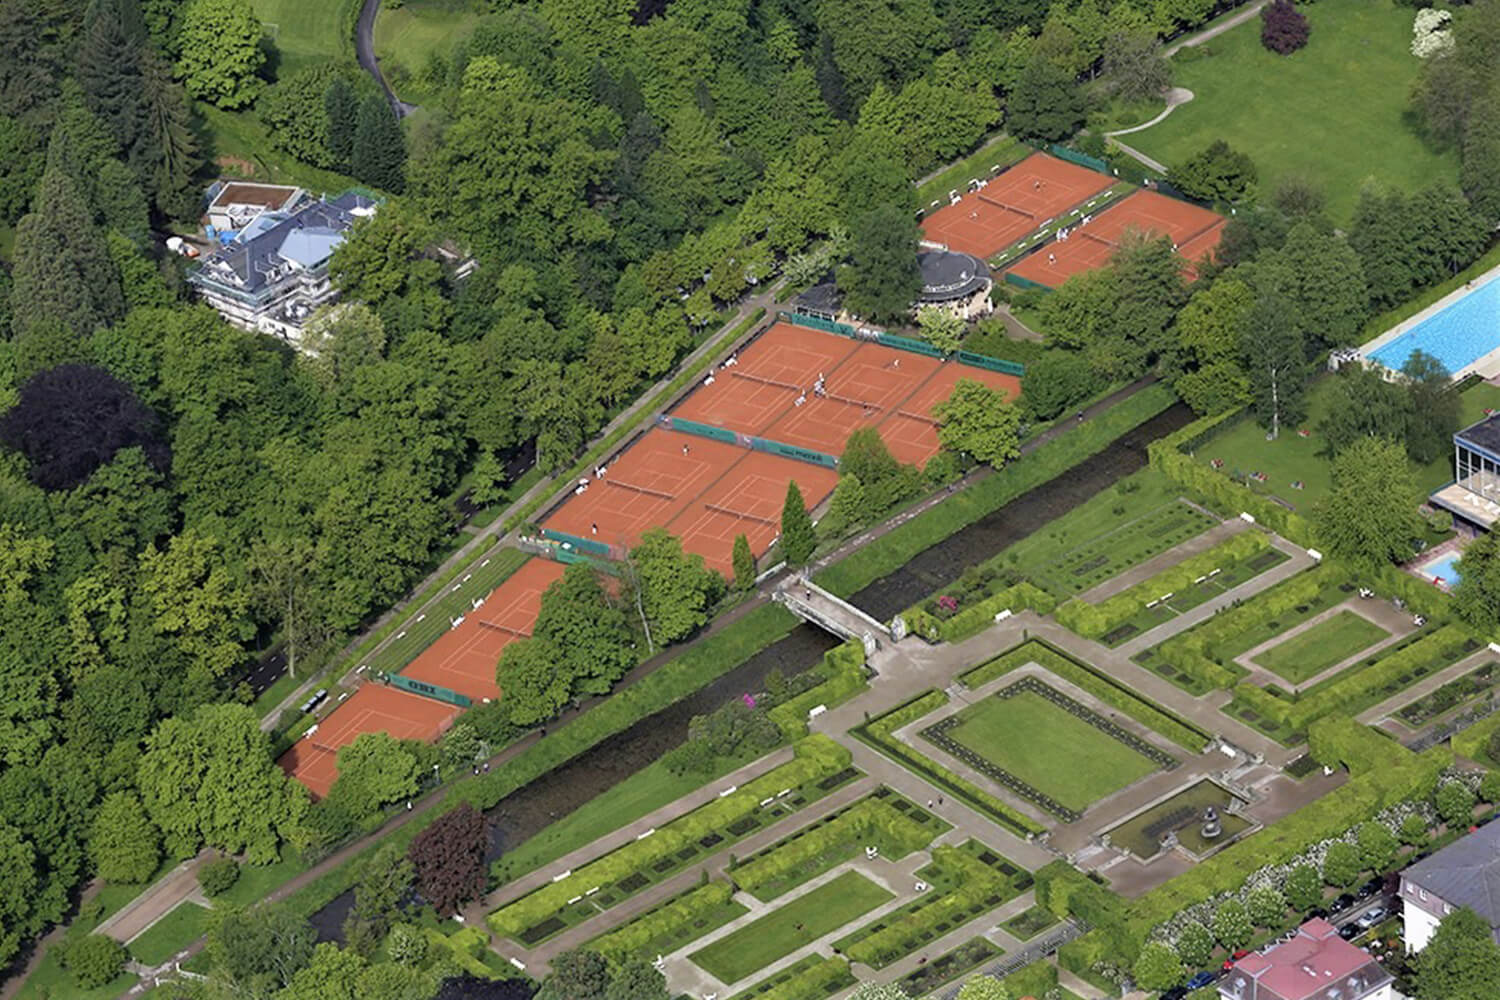 Roomers Baden-Baden Tennis Club Rot Weiss